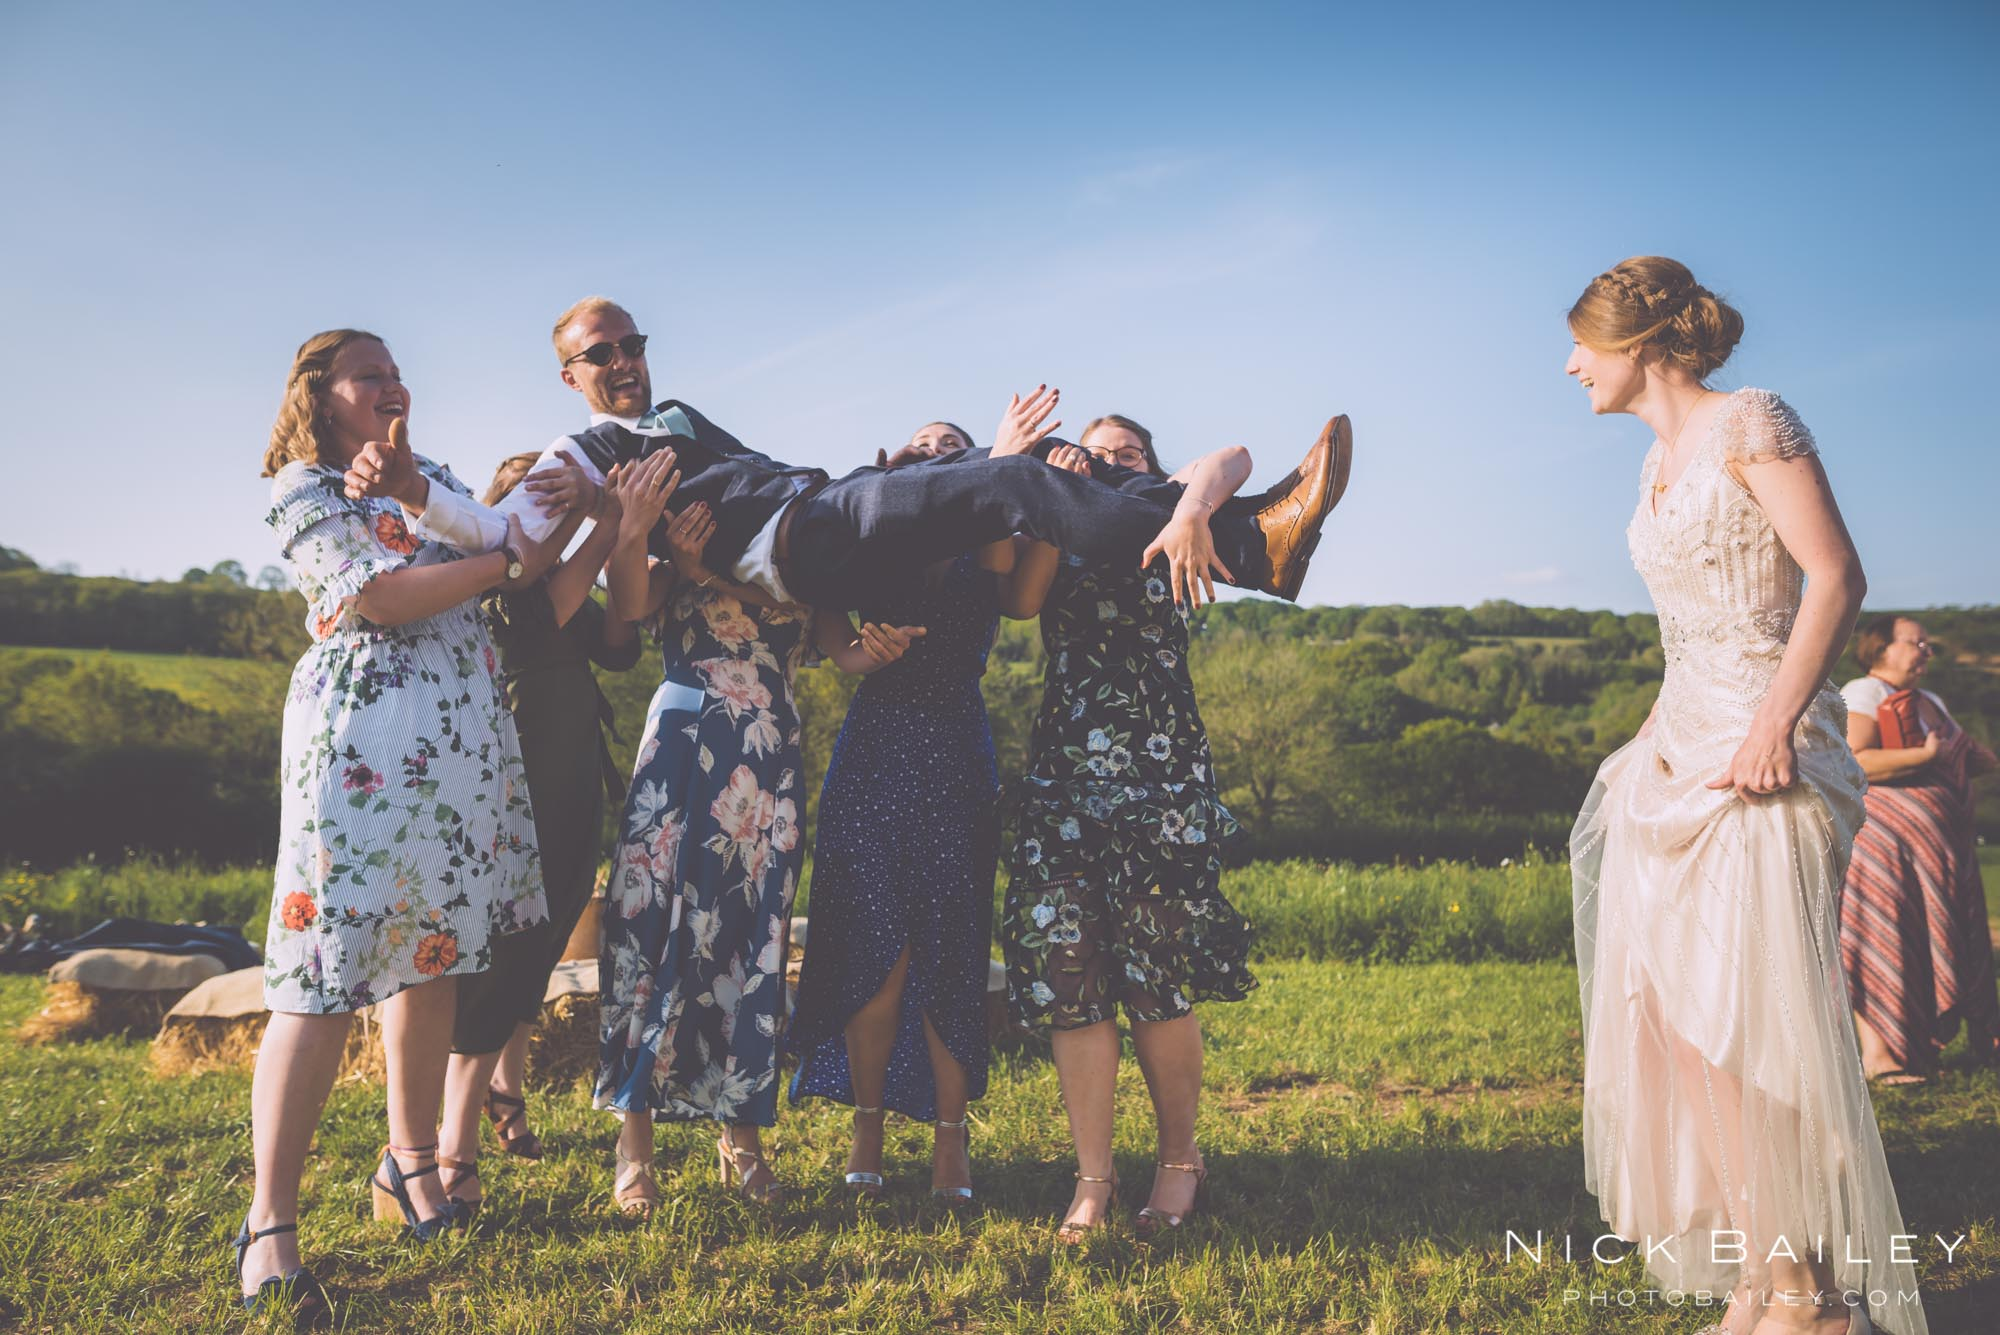 wedding-photographer-bodmin-87.jpg